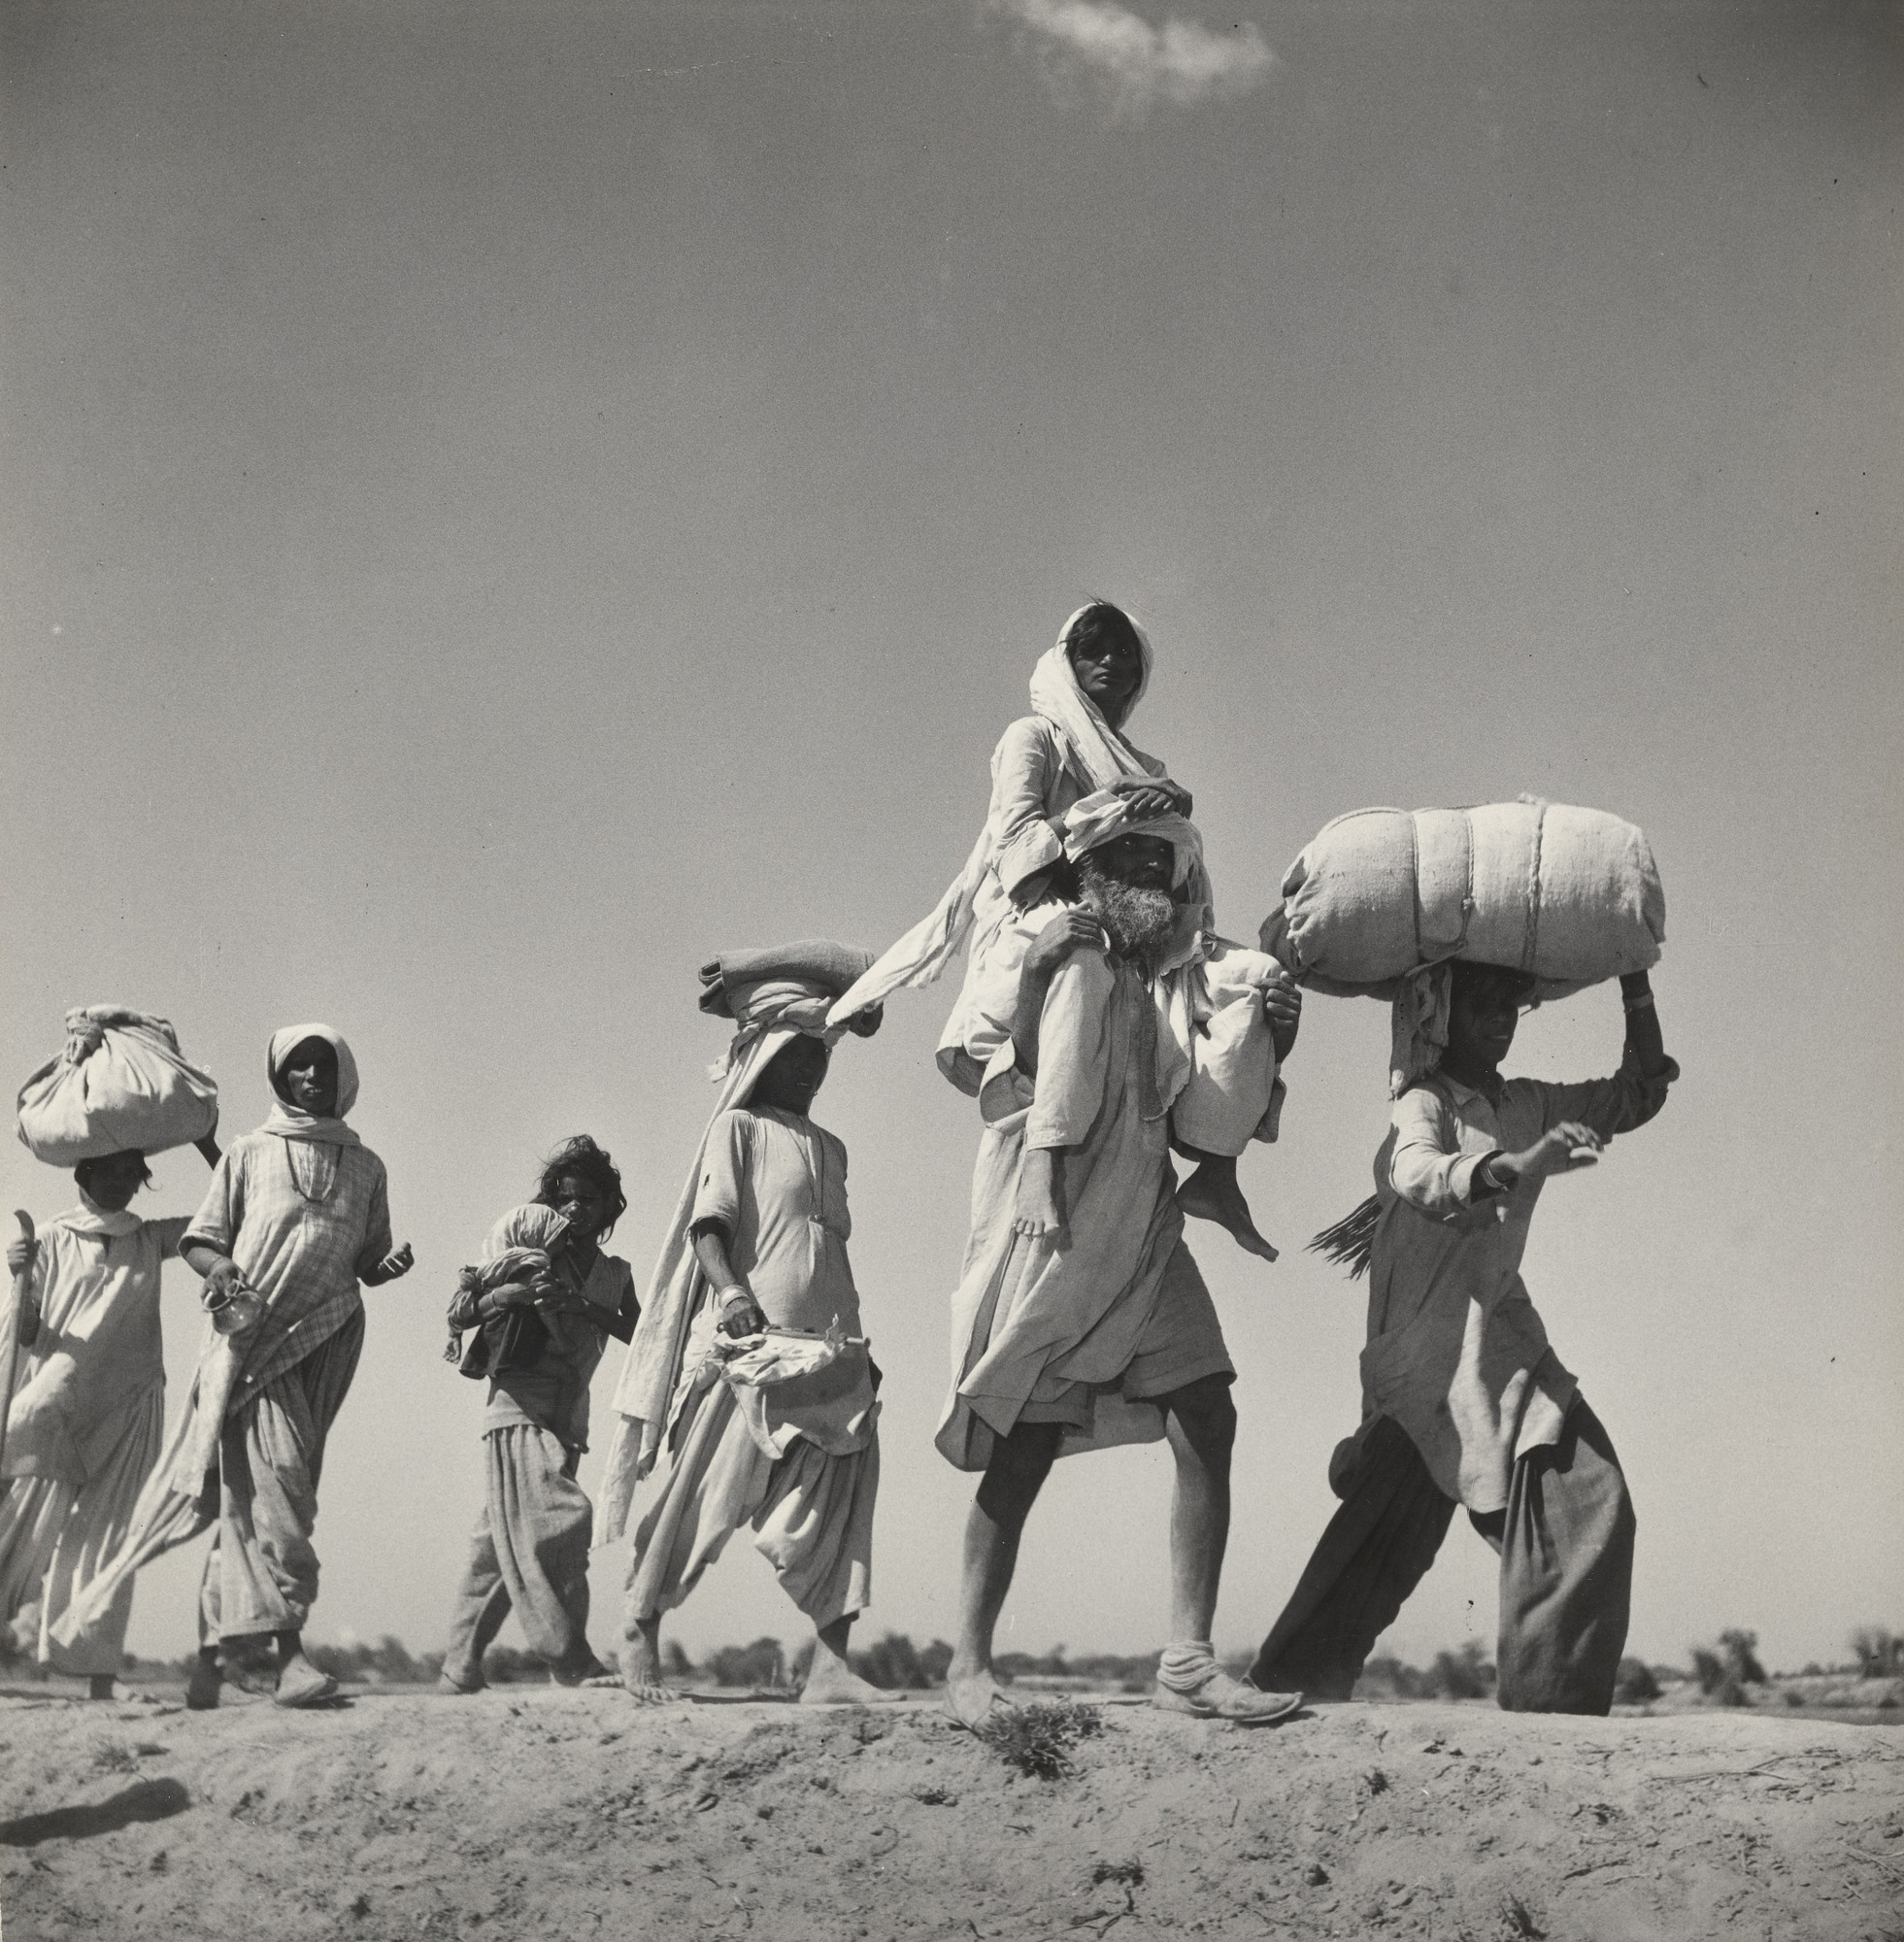 Margaret Bourke-White. Exodus, Pakistan. 1947